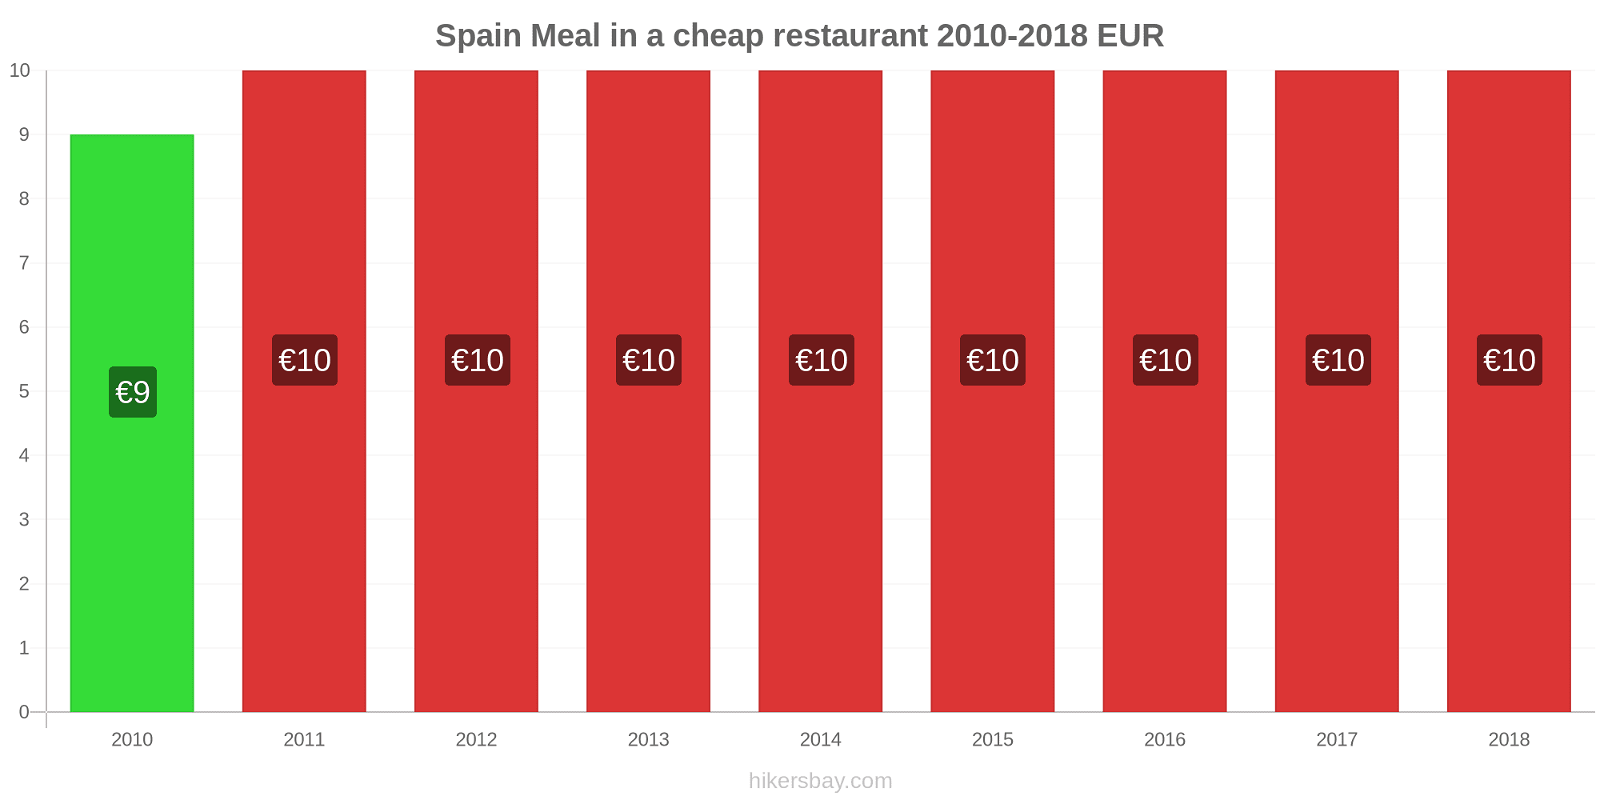 Spain price changes Meal in a cheap restaurant hikersbay.com